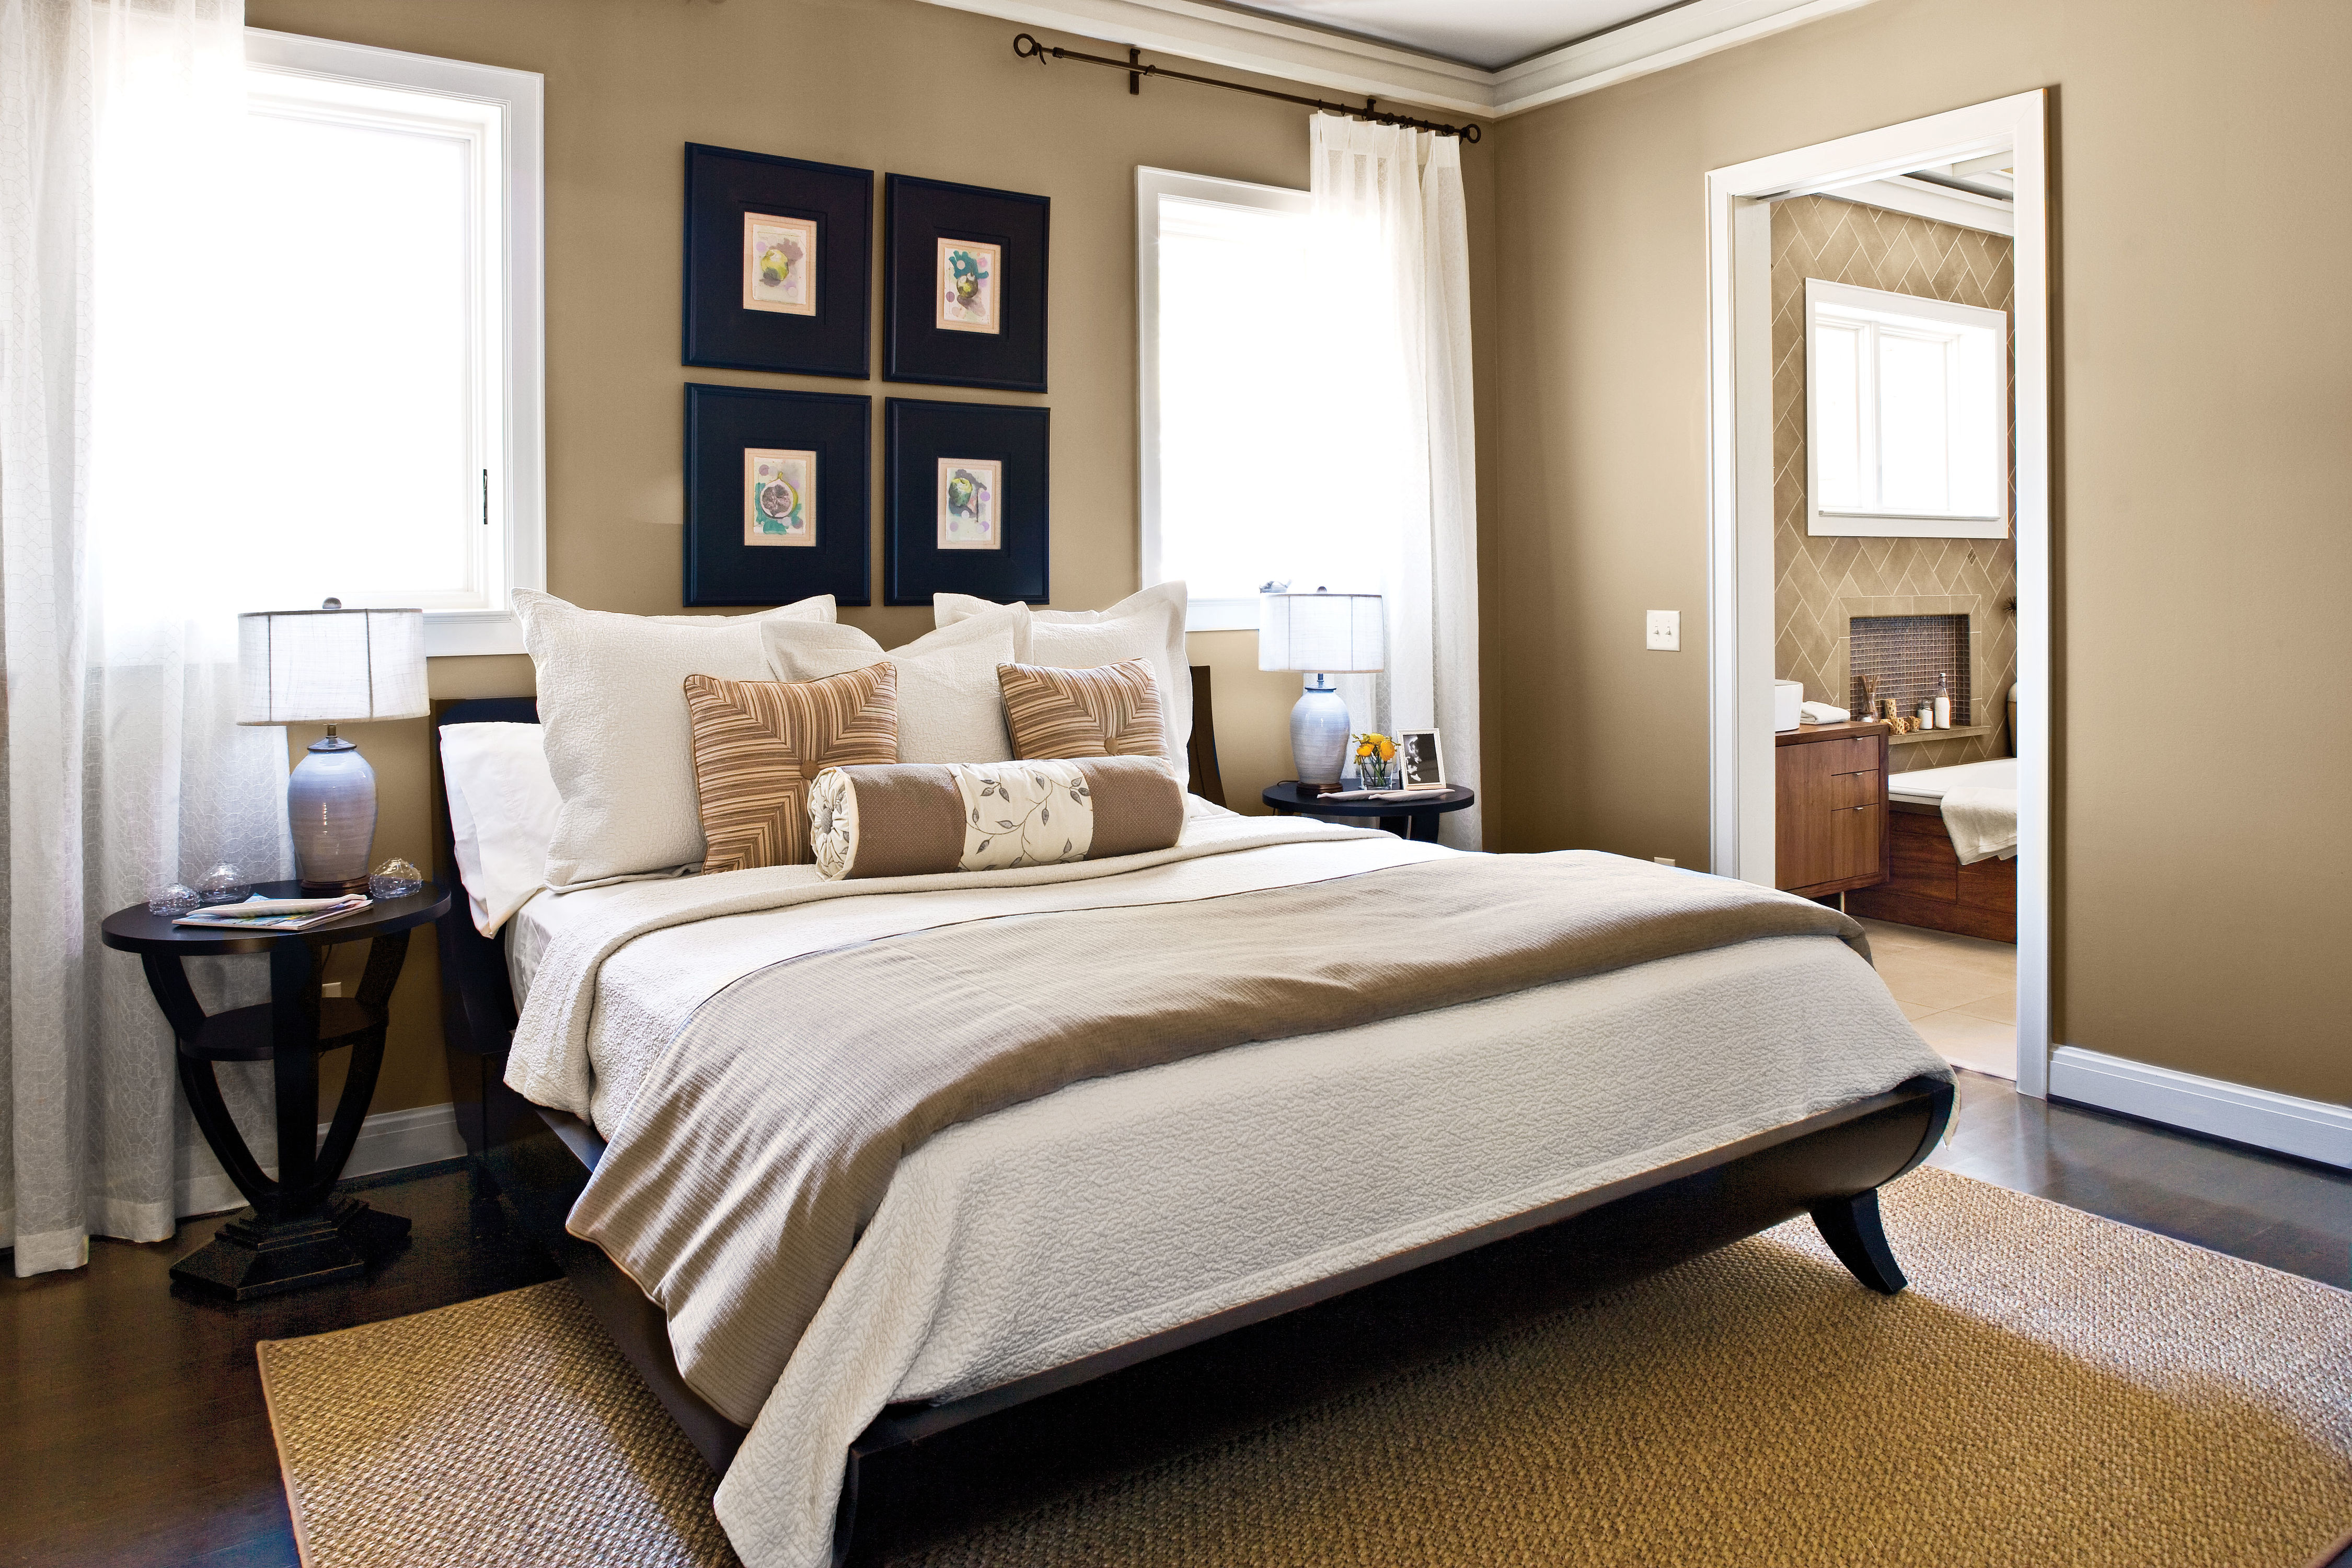 Master Bedroom Decorating Ideas - Southern Living on wallpaper for bedrooms, toys for bedrooms, inspiration for bedrooms, curtains for bedrooms, painting for bedrooms, plants for bedrooms, windows for bedrooms, paint for bedrooms, renovation for bedrooms, organization for bedrooms, color for bedrooms, diy for bedrooms, art for bedrooms, woodworking for bedrooms, lighting for bedrooms, flooring for bedrooms, storage for bedrooms, fashion for bedrooms, design for bedrooms, doors for bedrooms,